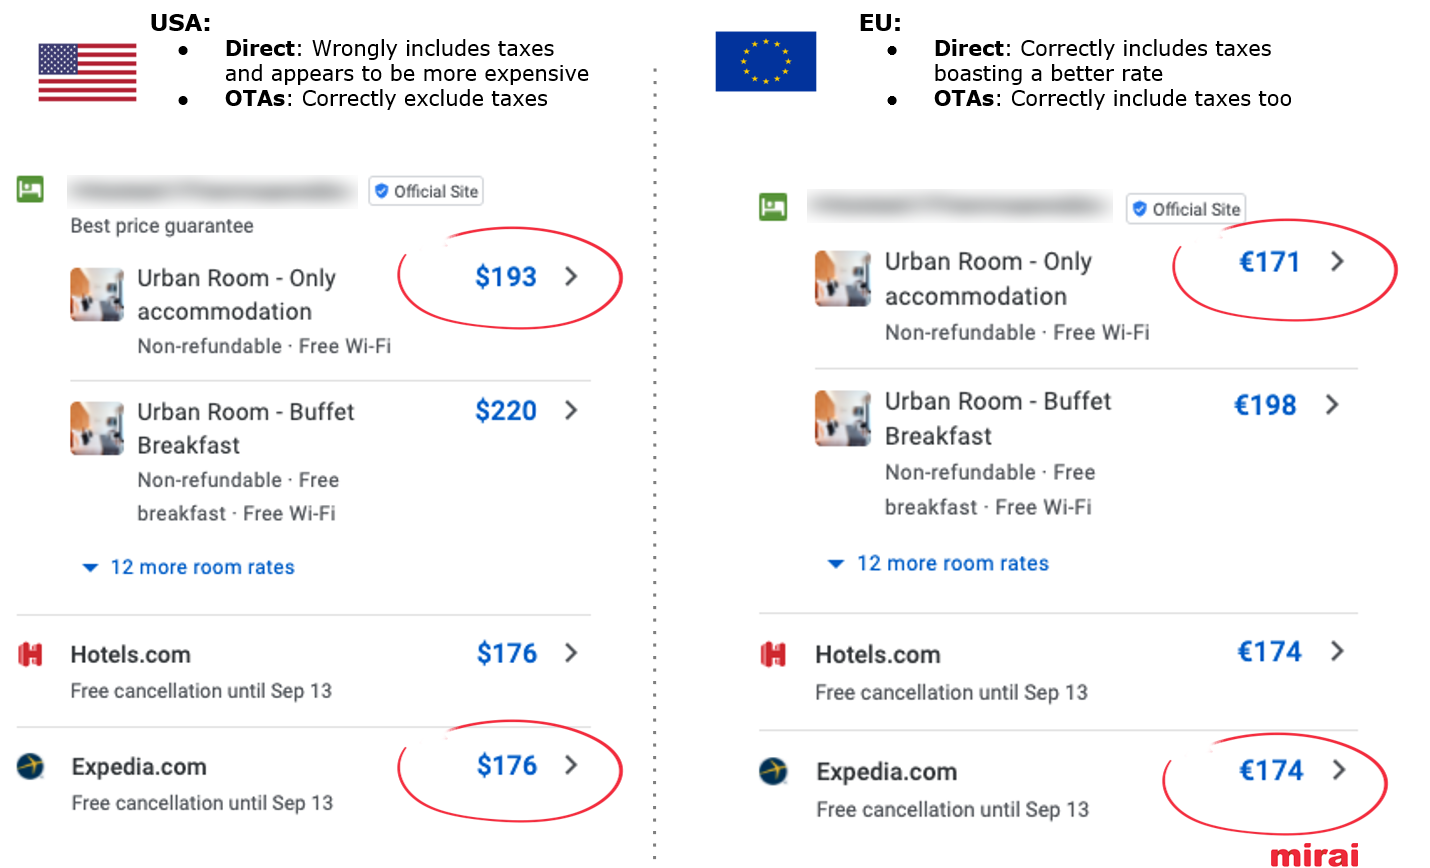 9. Adapt your tax information to each POS in Google Hotel Ads - Mirai